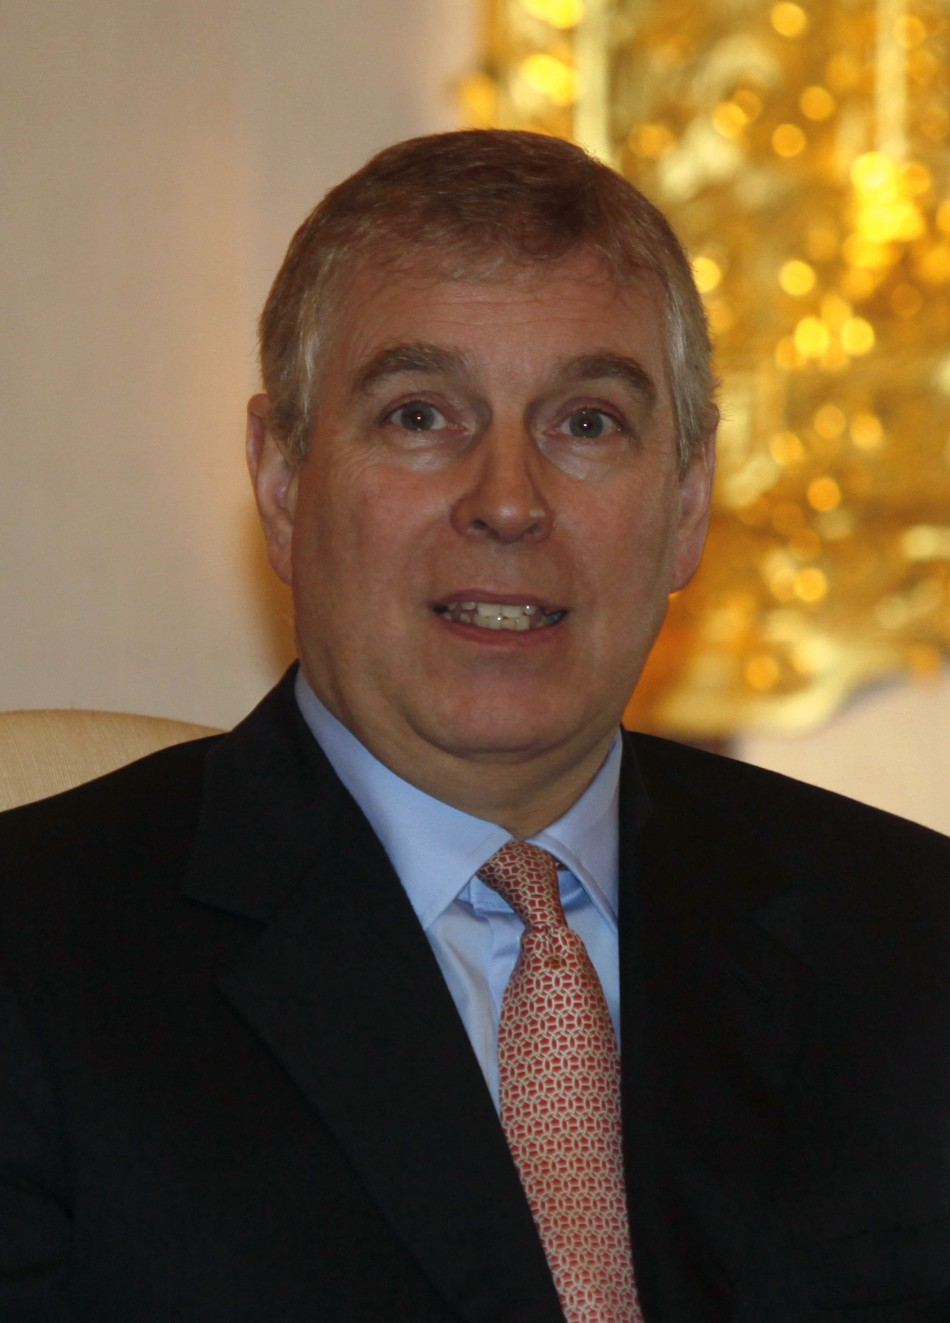 Prince Andrew in India